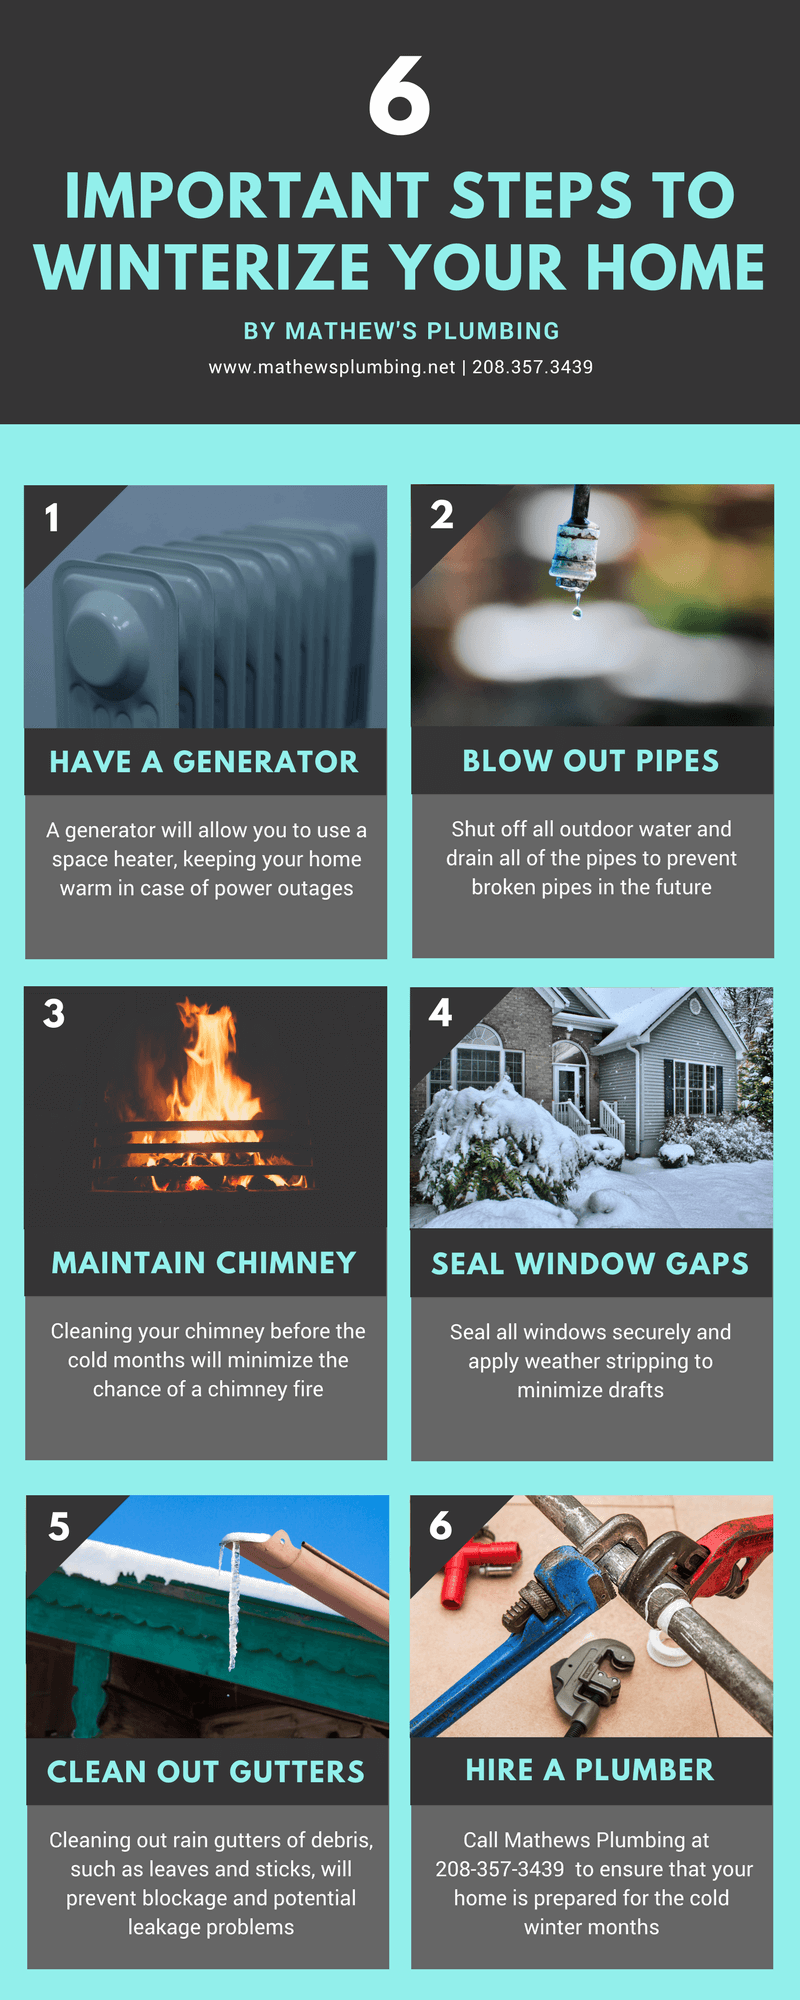 Winterize Your Home With These 6 Steps from Mathew's Plumbing